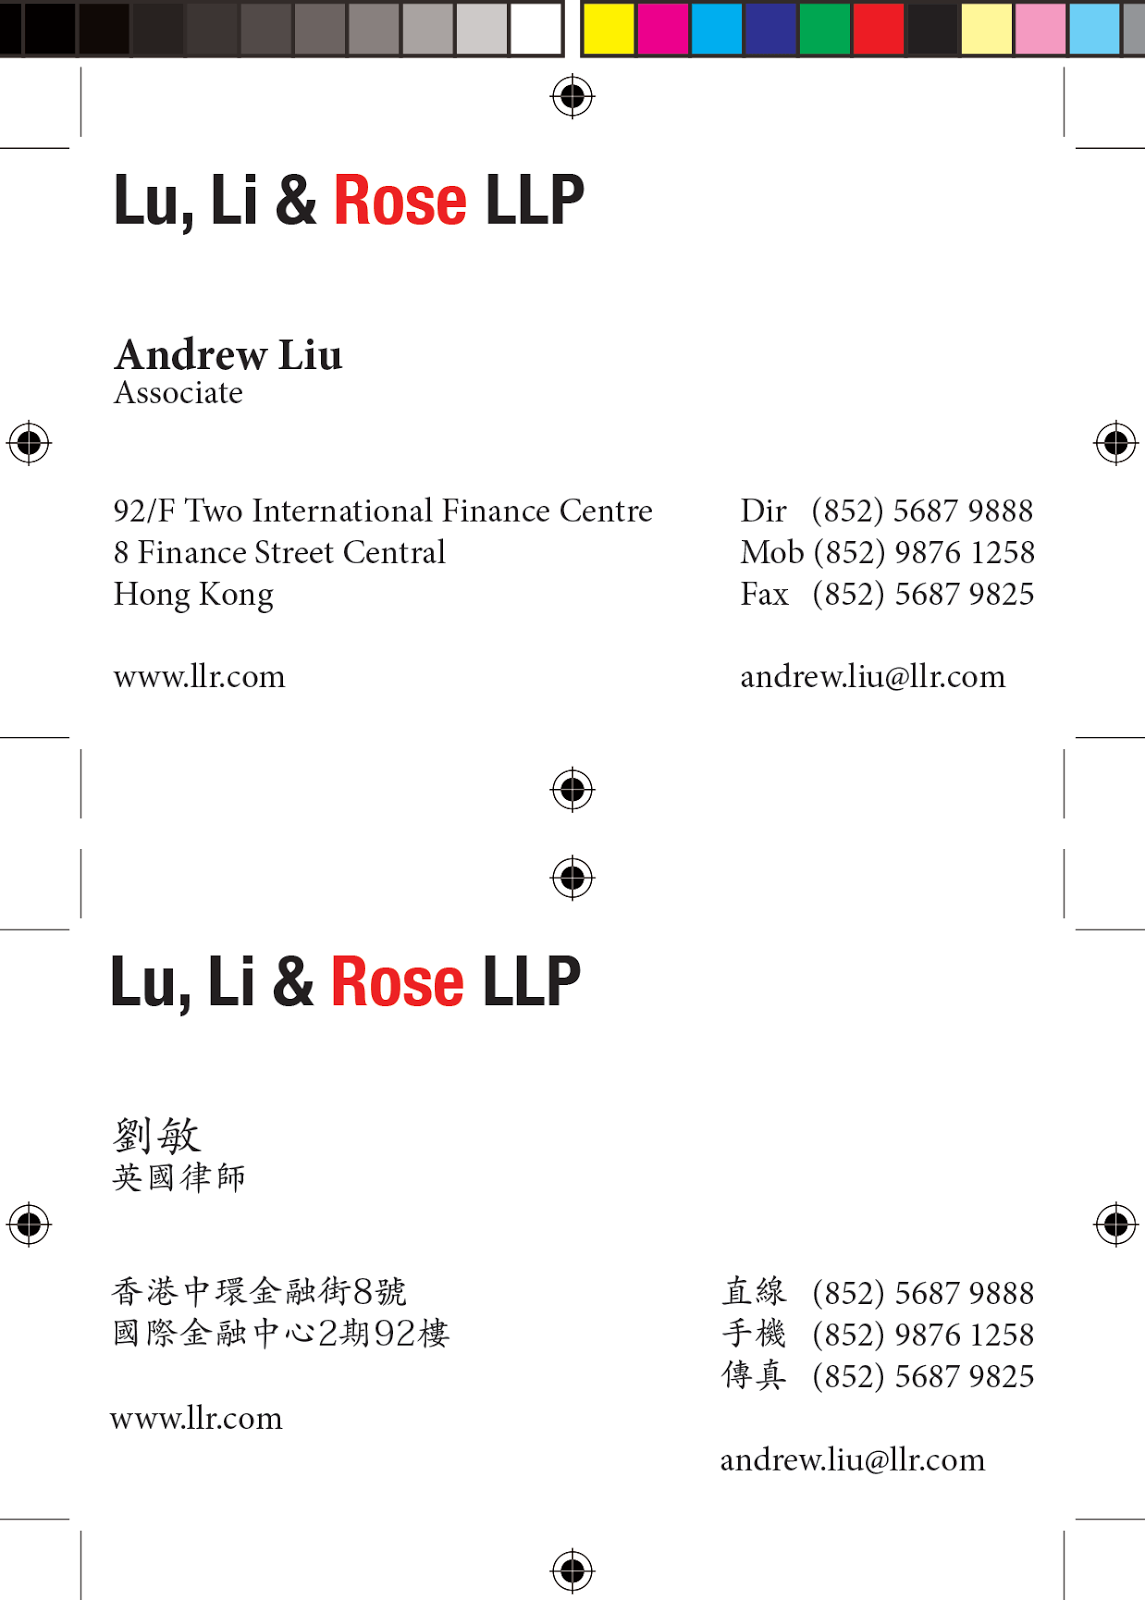 Business cards printed in english and chinese choice image card business cards printed in english and chinese image collections business cards printed in english and chinese reheart Gallery